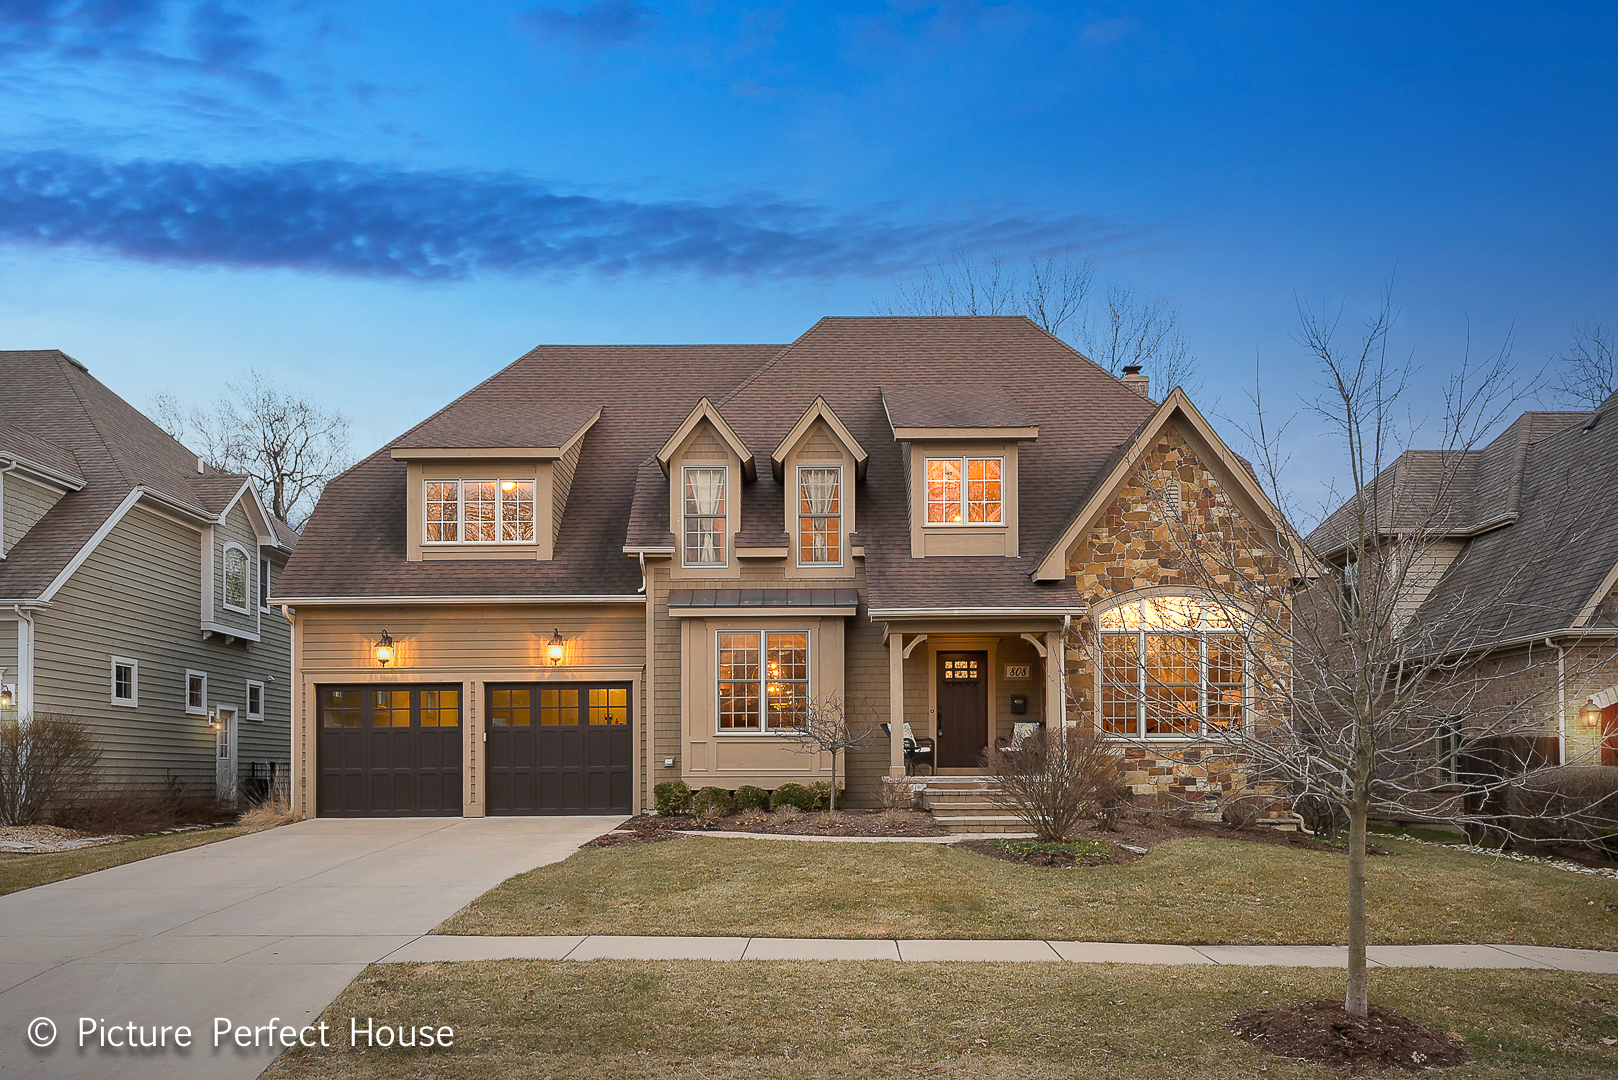 808 SOUTH WRIGHT STREET, NAPERVILLE, IL 60540